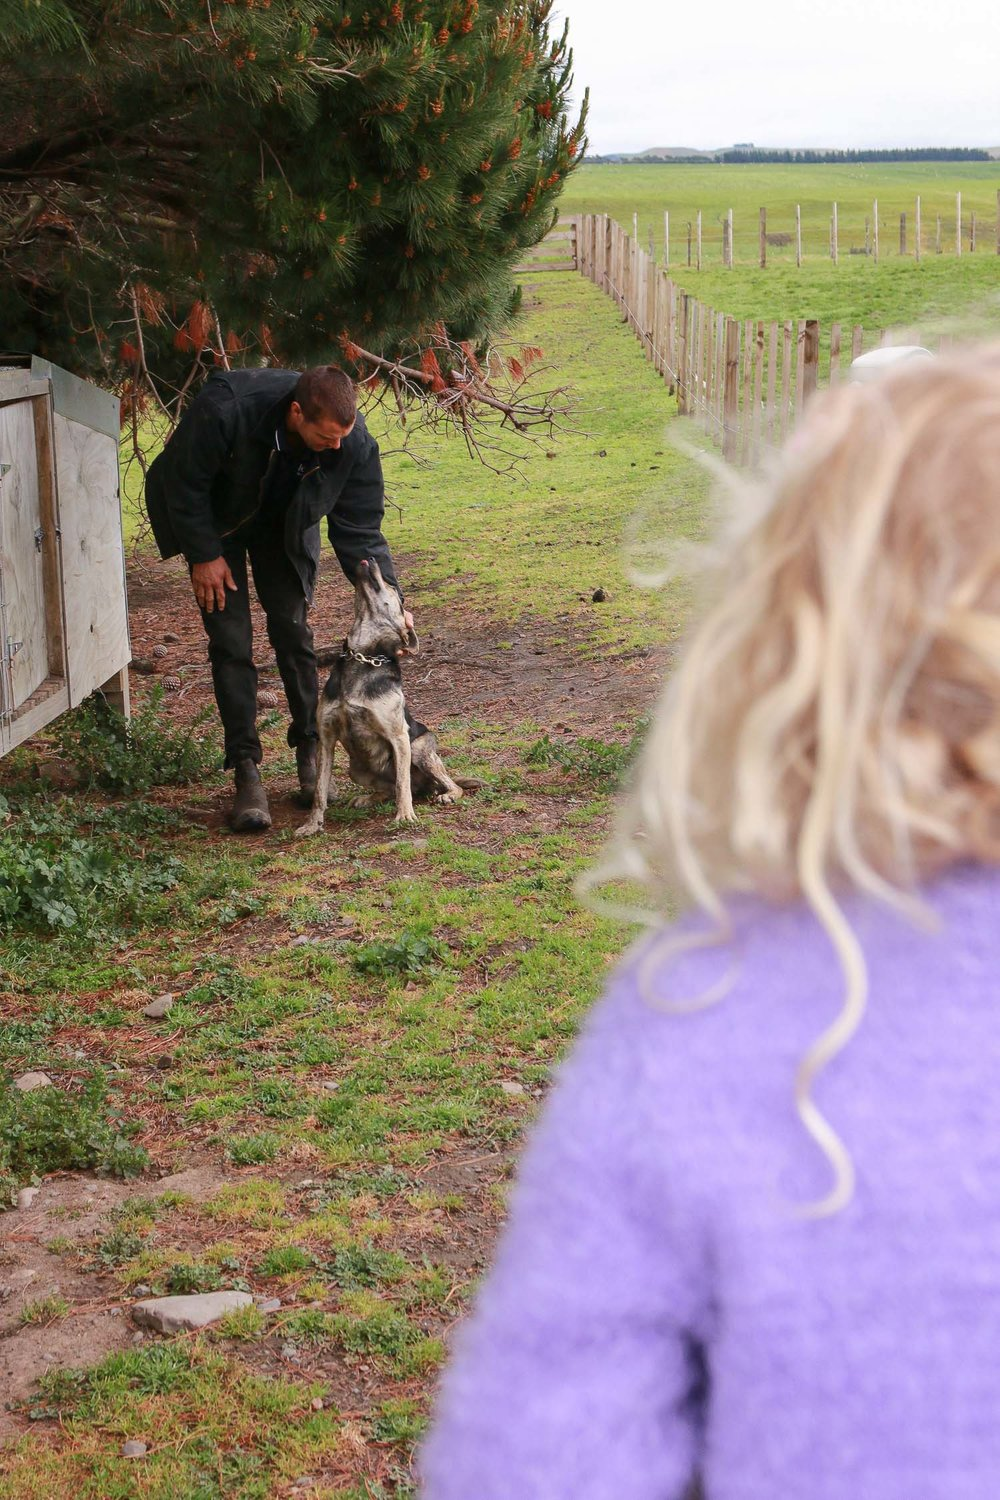 little-girl-on-fence-watching-dad-with-dogs-on-farm